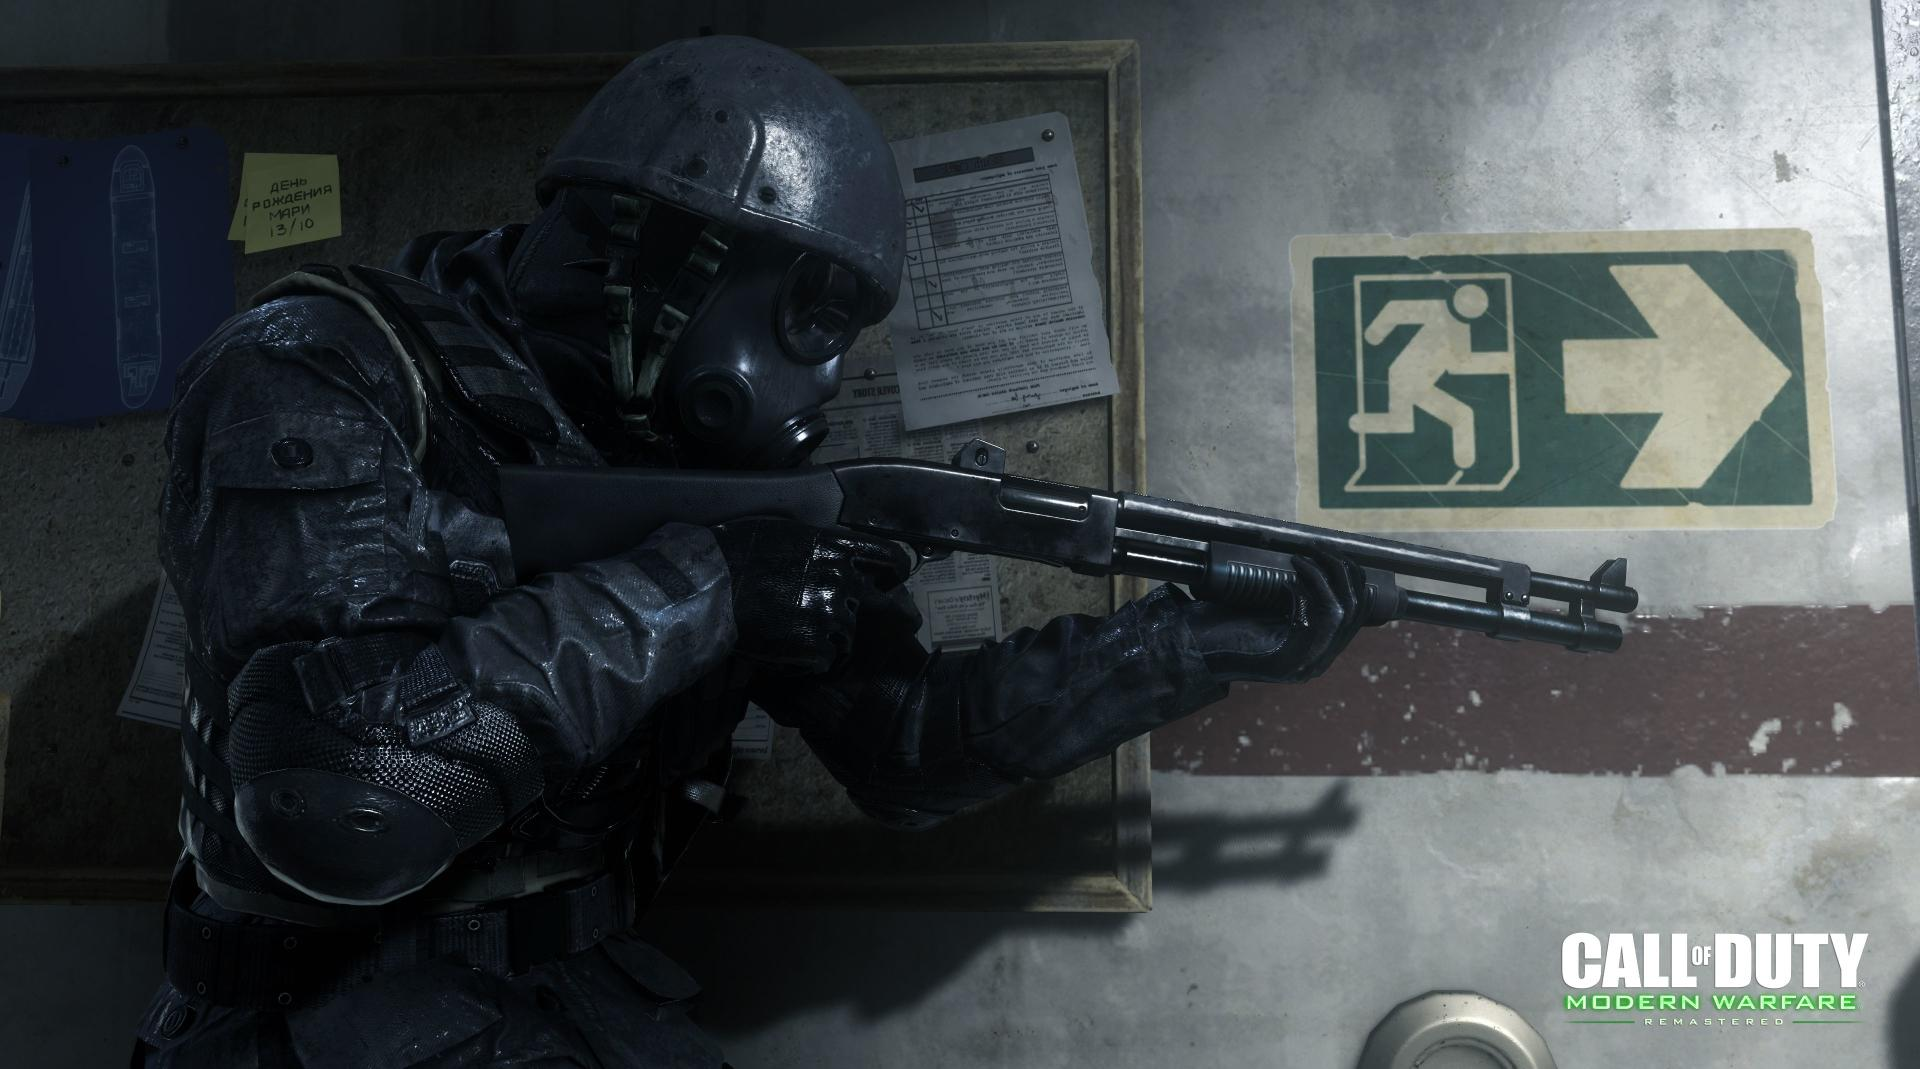 Call Of Duty Modern Warfare Remastered wallpapers HD quality